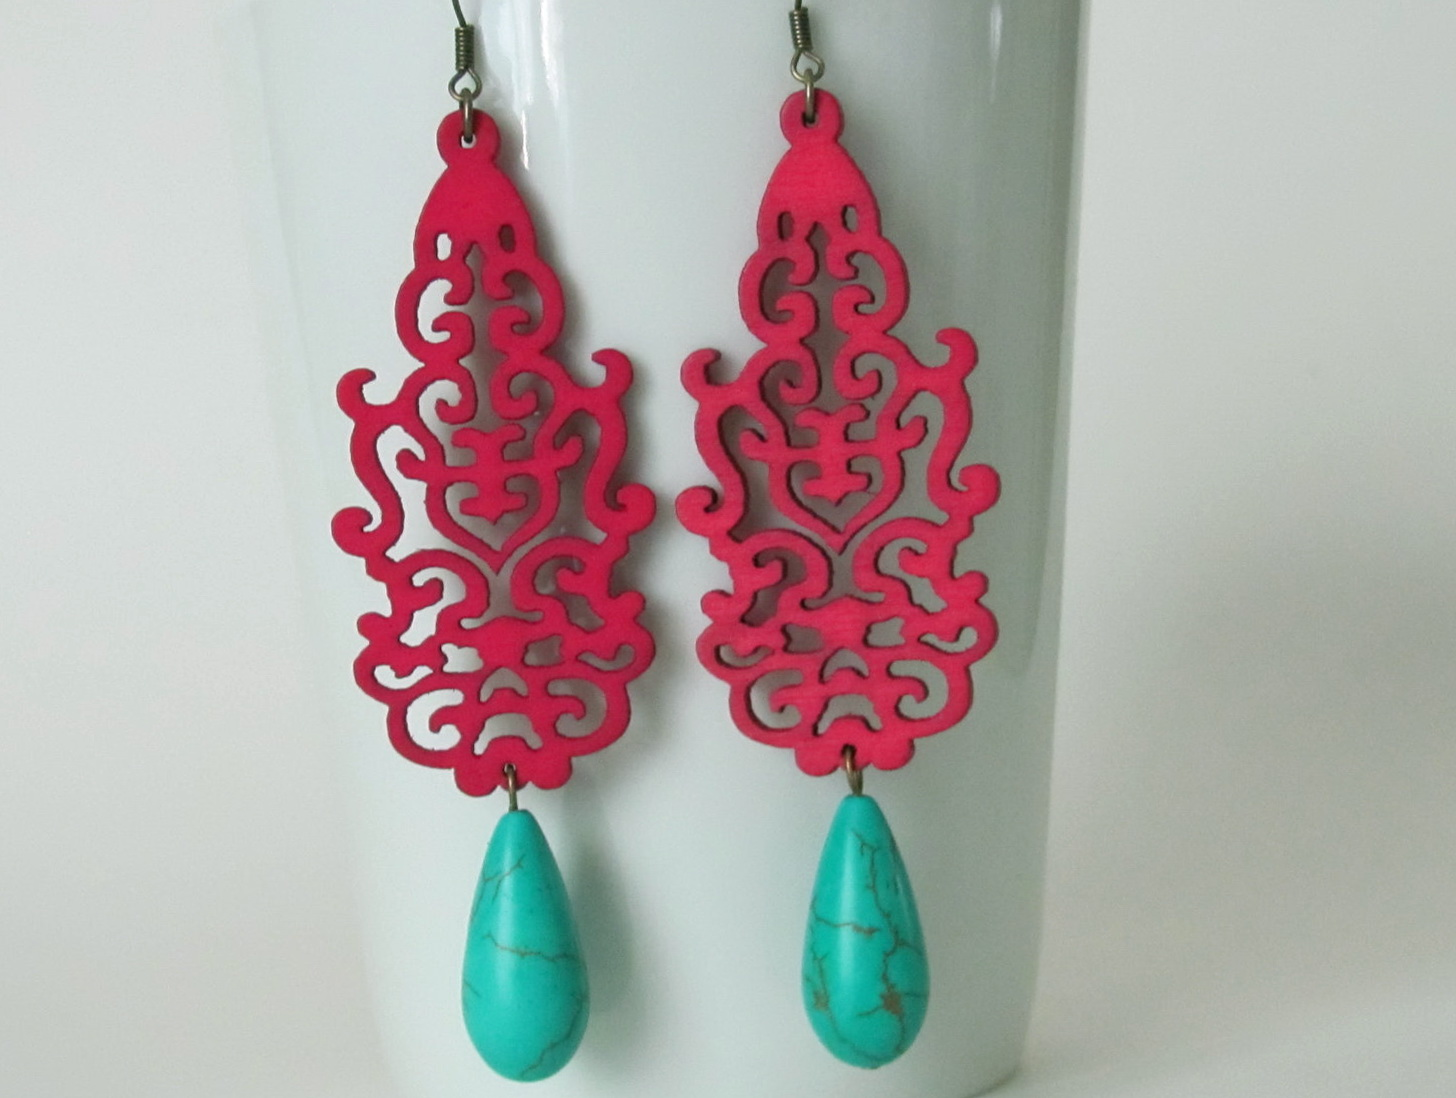 Hot Pink Chandelier Earrings Home Design Ideas